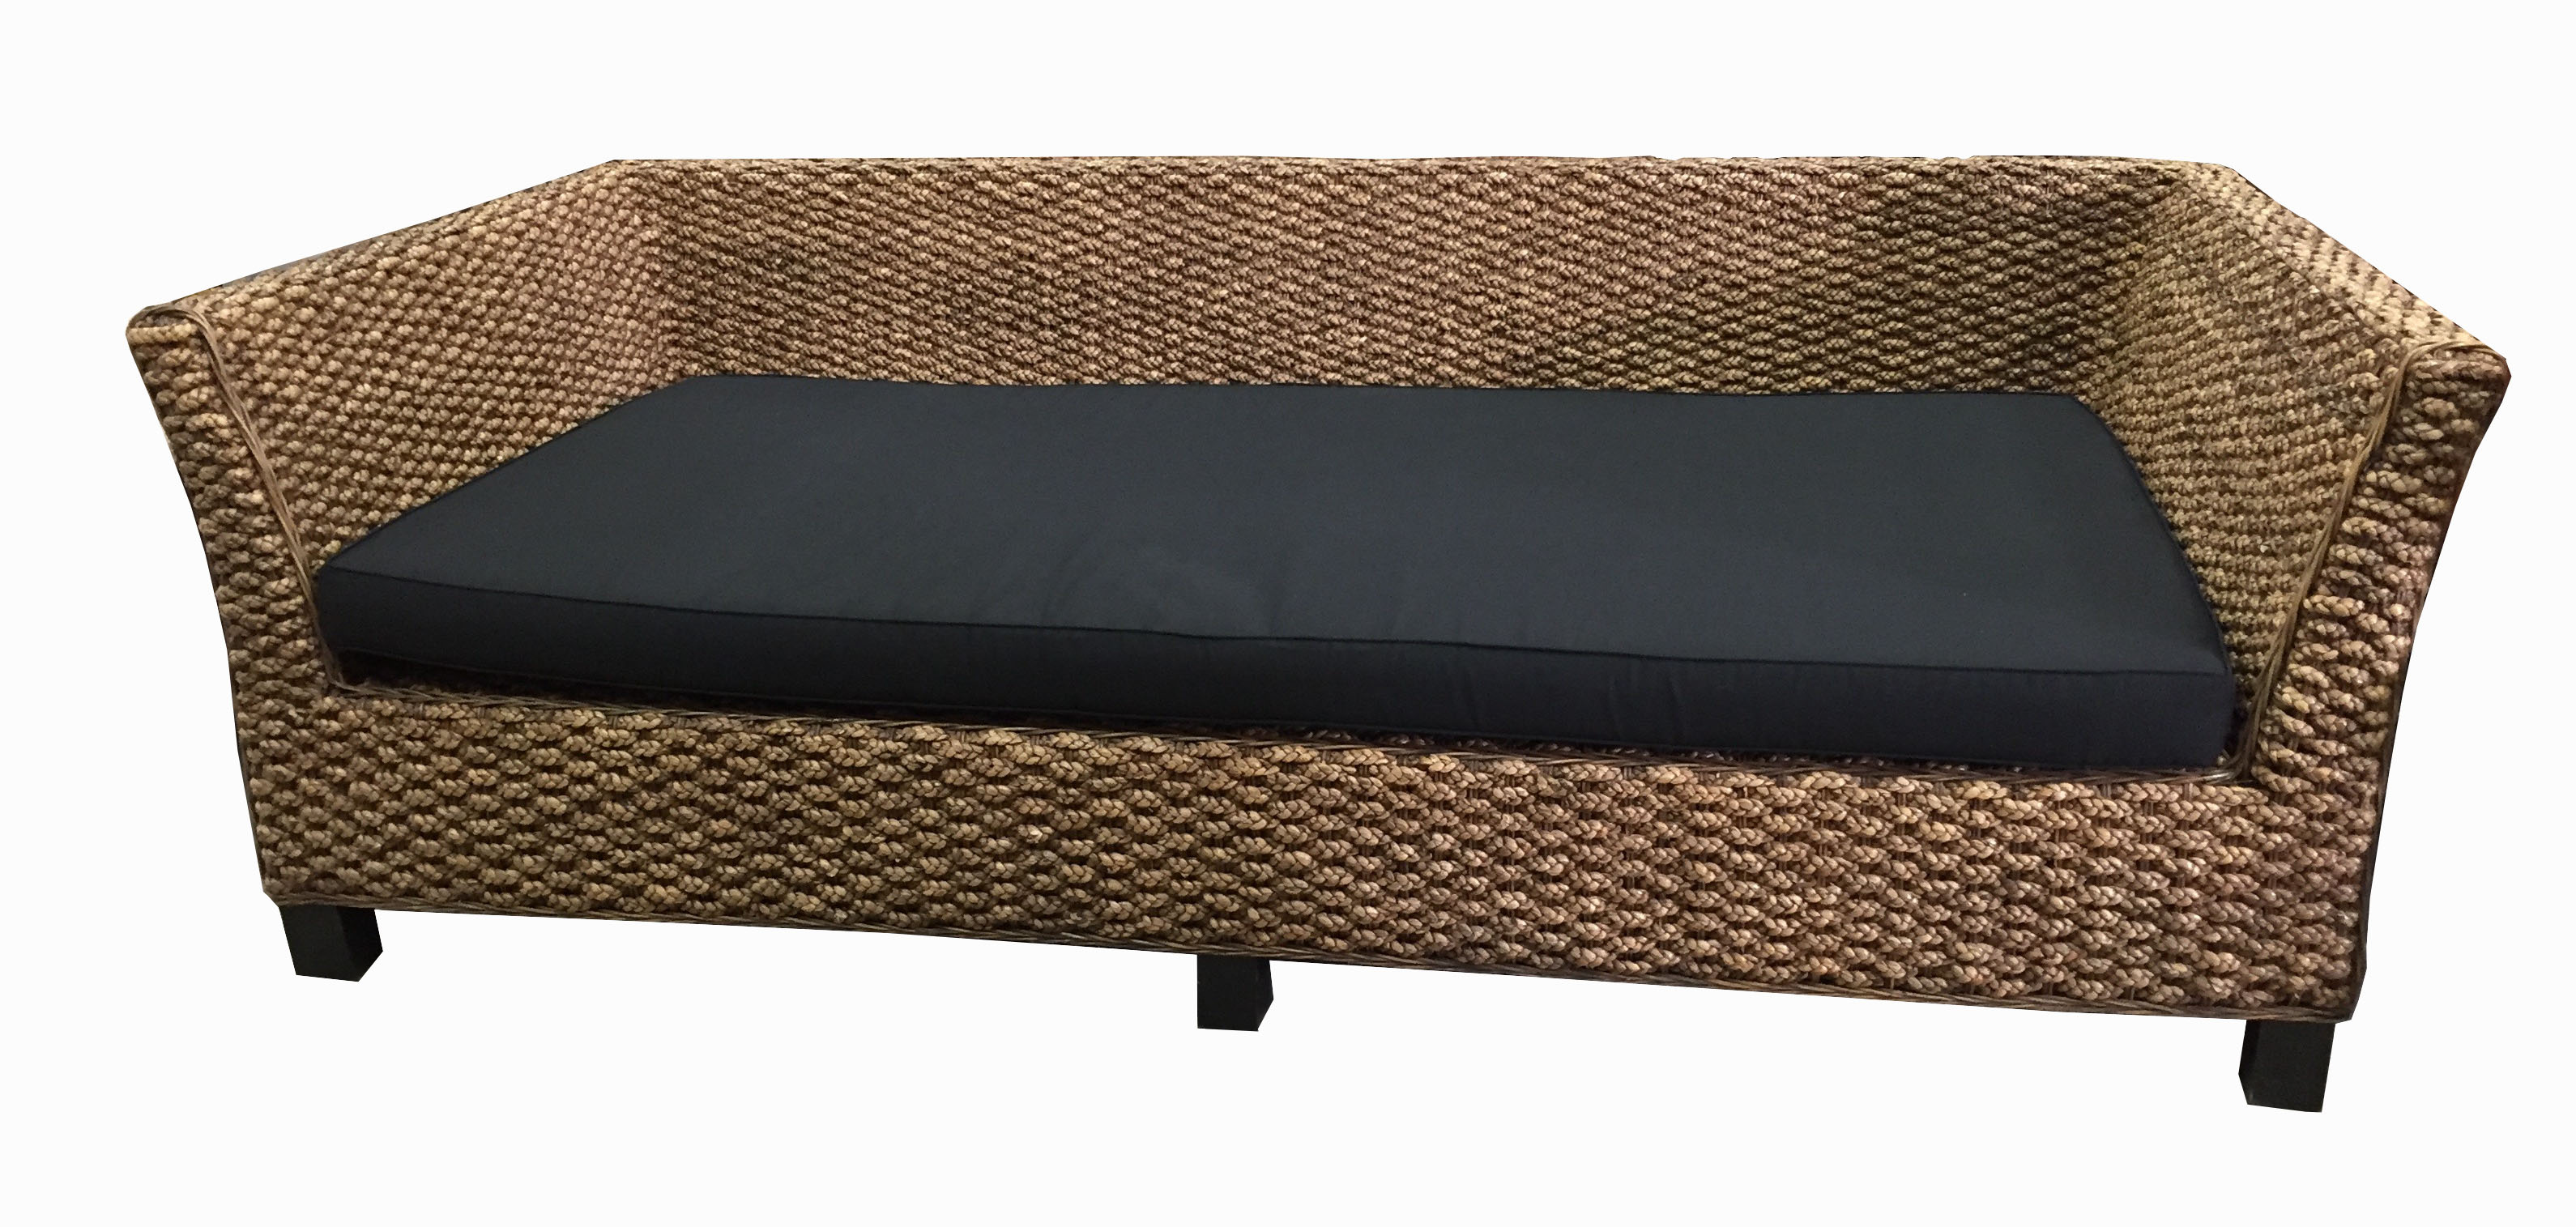 Outdoor Daybeds For Sale Imported Indonesian Furniture Wa Prime Liquidations